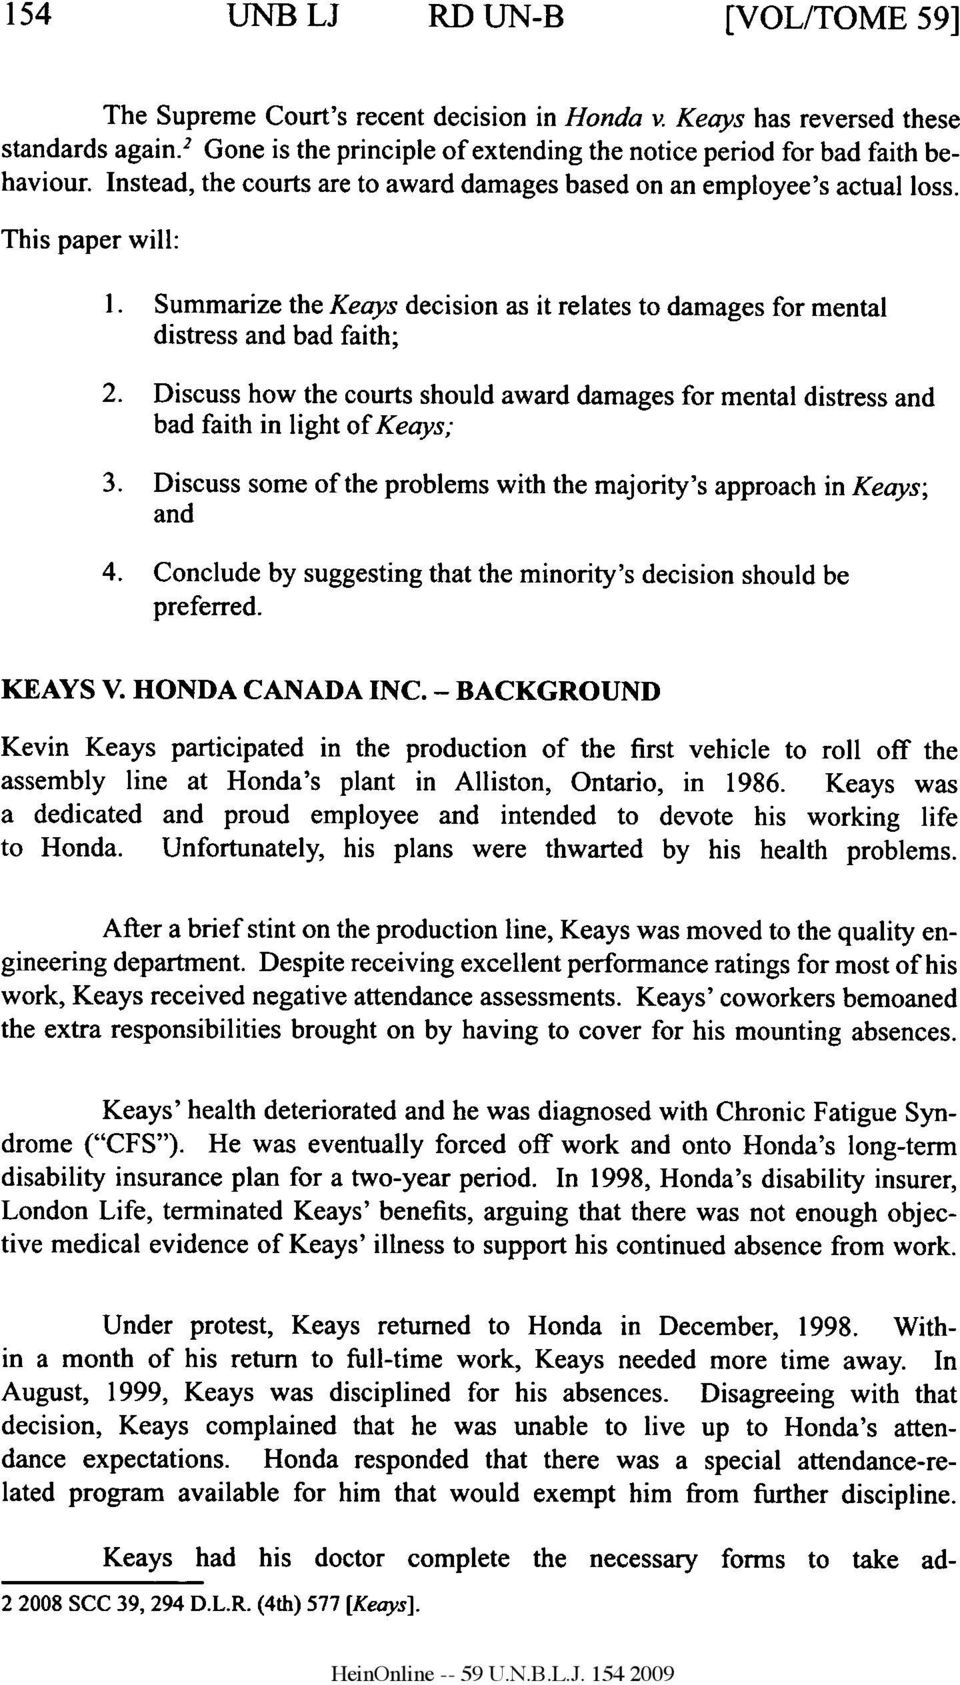 Summarize the Keays decision as it relates to damages for mental distress and bad faith; 2. Discuss how the courts should award damages for mental distress and bad faith in light of Keays; 3.